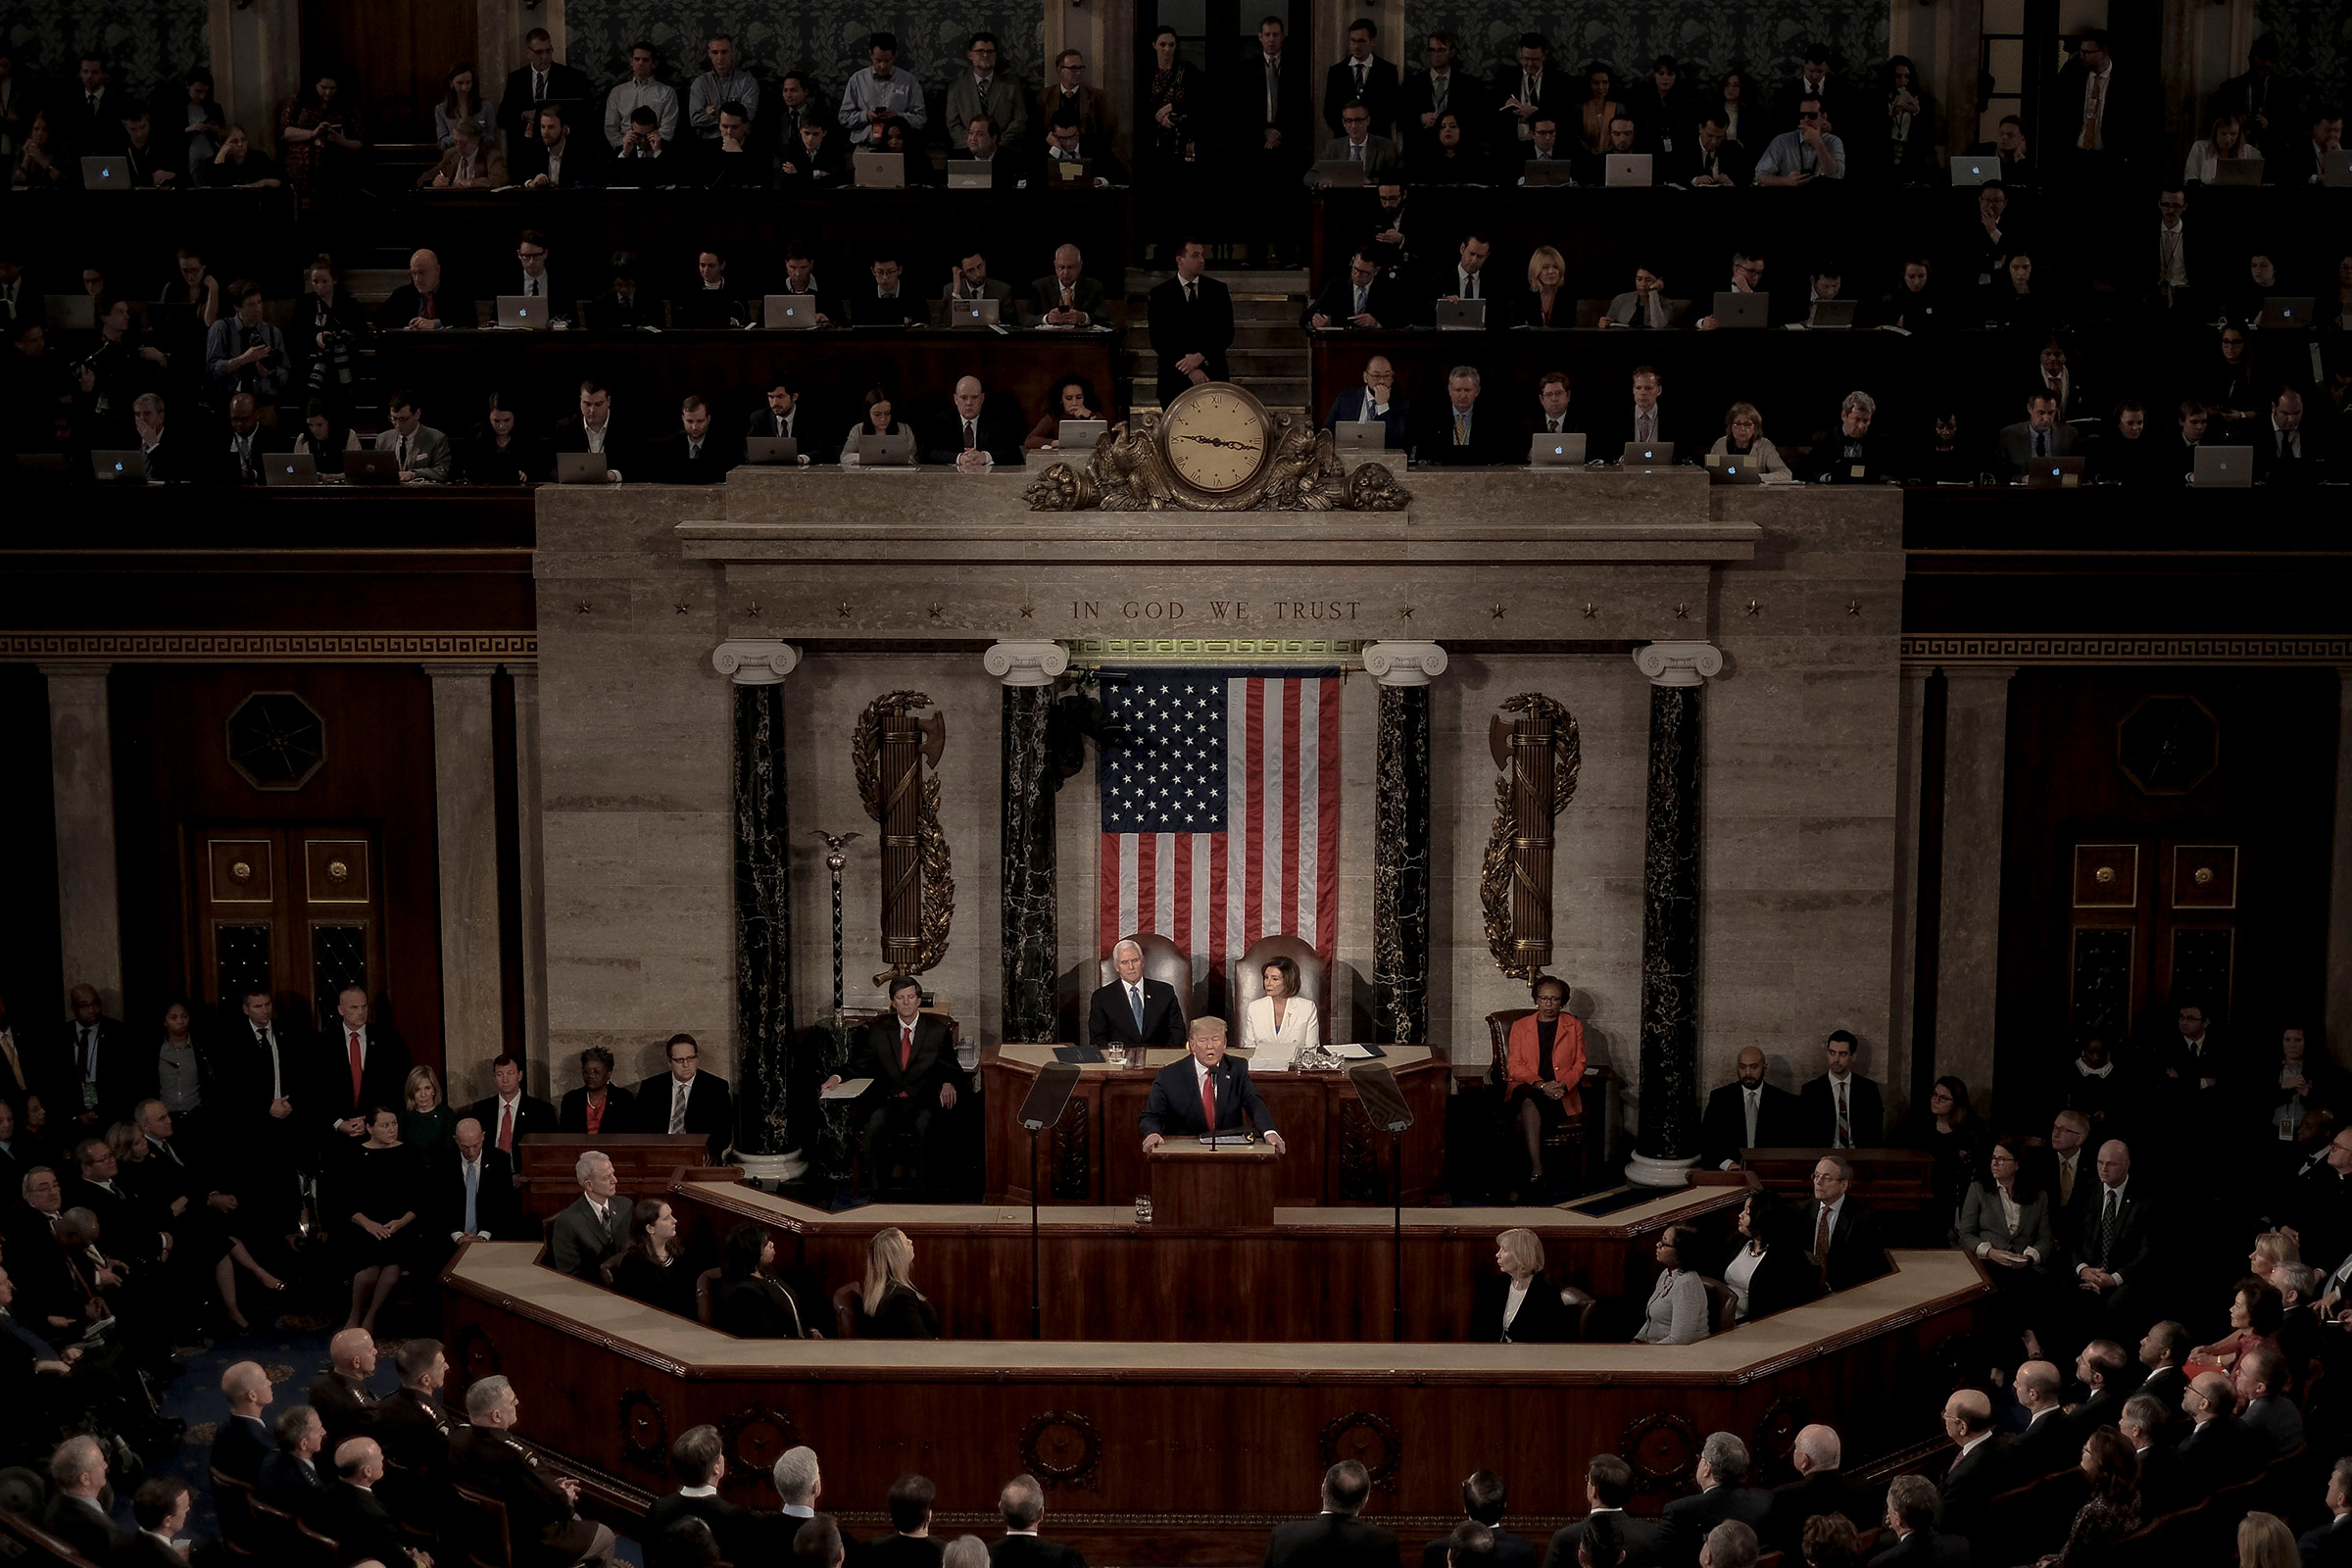 President Donald Trump delivers a State of the Union address to a joint session of Congress at the U.S. Capitol in Washington, D.C., Feb. 4, 2020. An aide said the theme of the speech would reflect Trump's  relentless optimism  for the country.